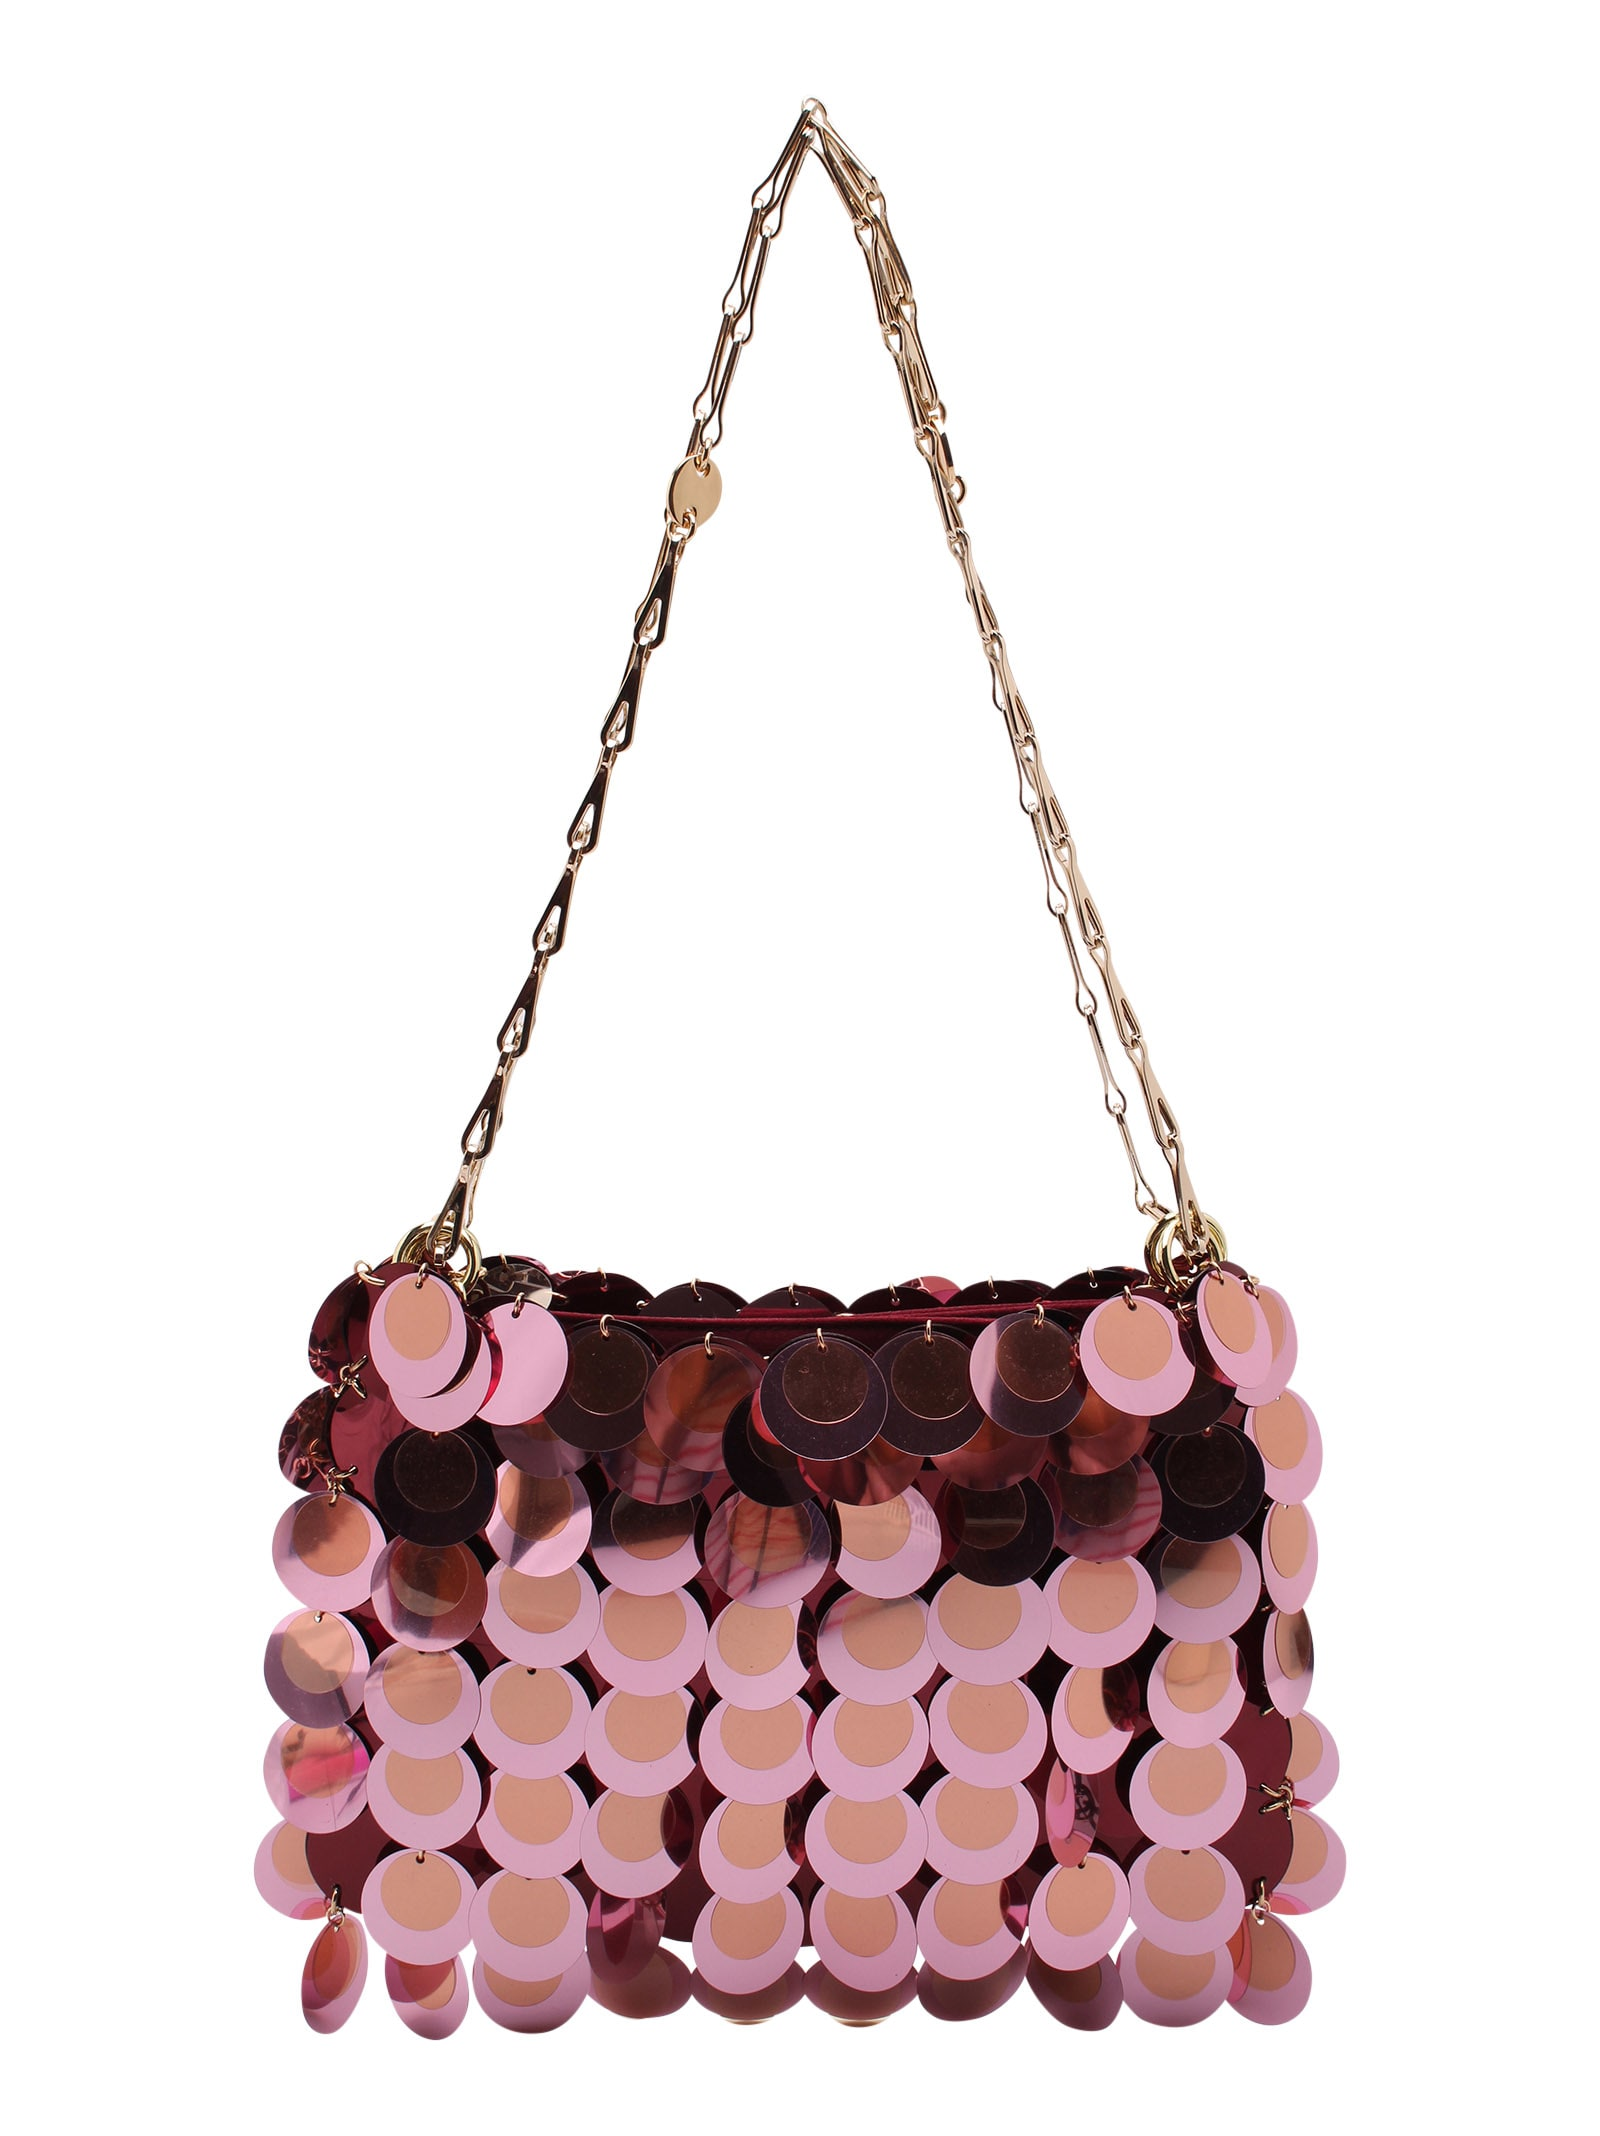 Paco Rabanne 1969 Plastic Shoulder Bags In Champagne / Pink